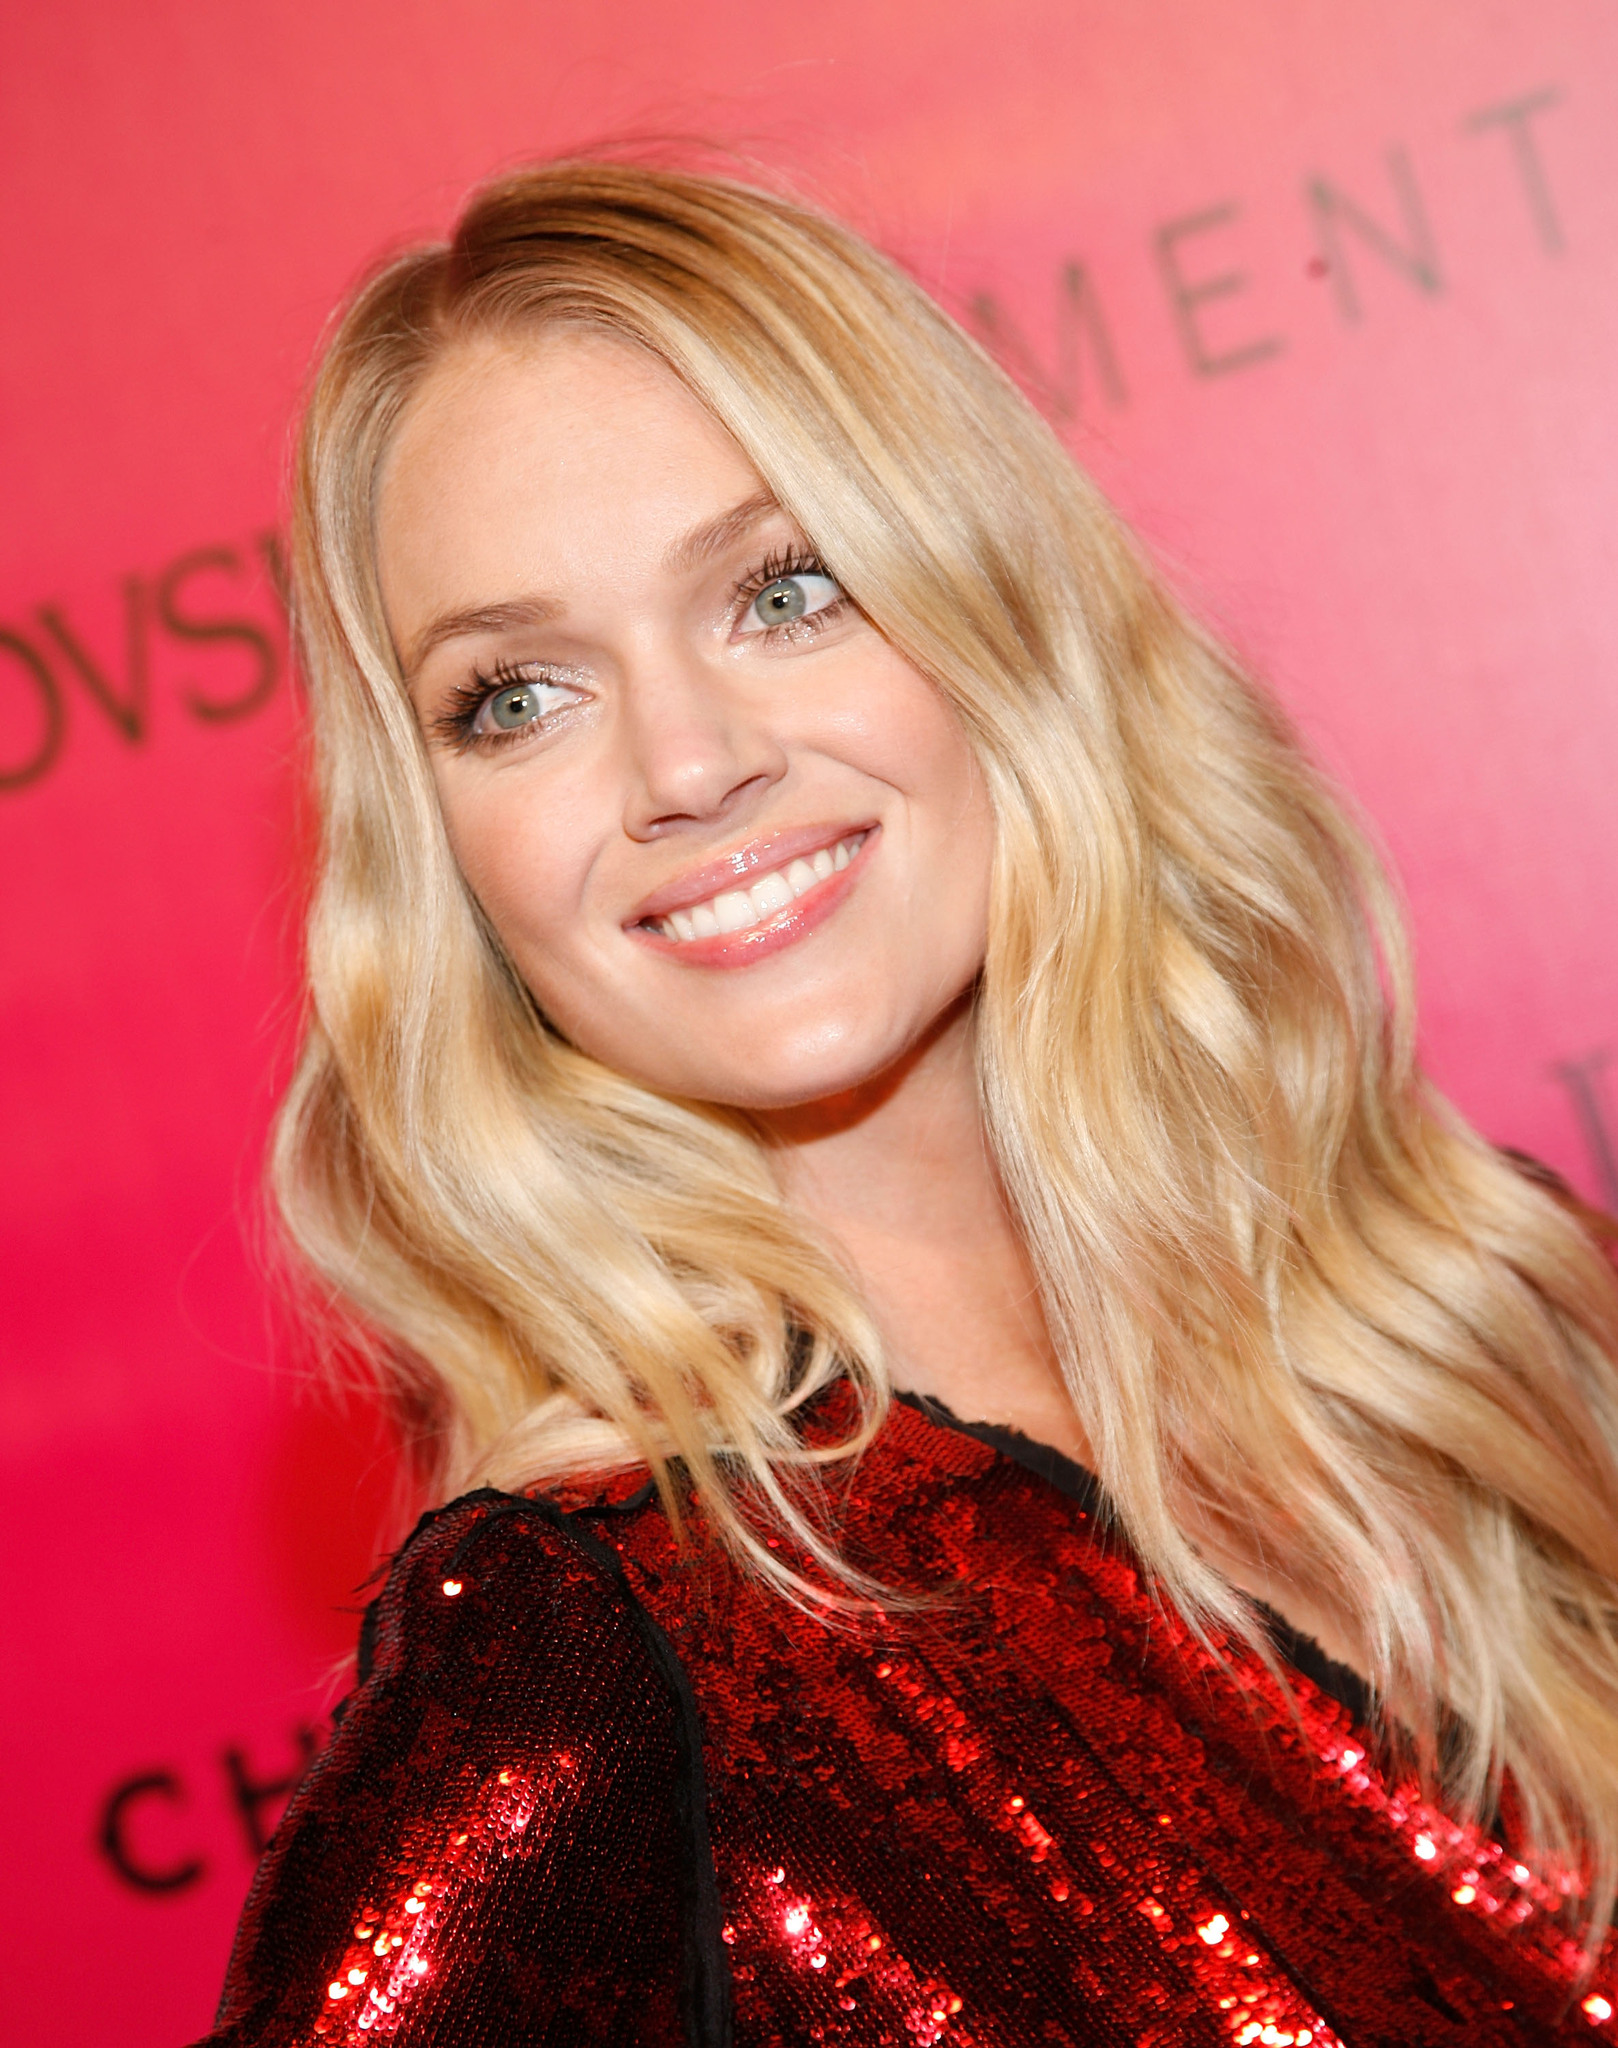 Lindsay Ellingson nudes (23 pics), pictures Porno, Instagram, see through 2017